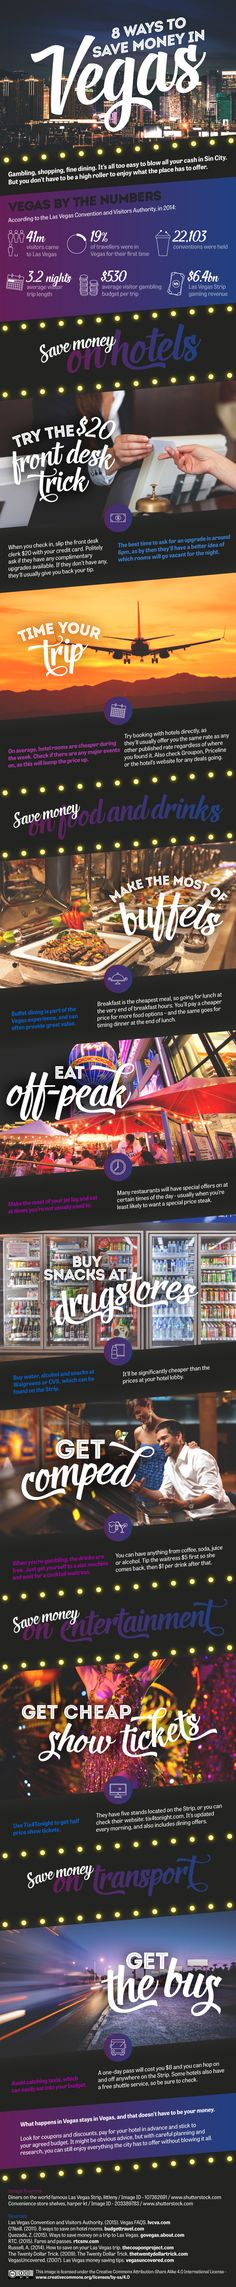 8 Ways to Save Money in #Vegas [INFOGRAPHIC] // Digital Remix // #Infographic #VegasTips